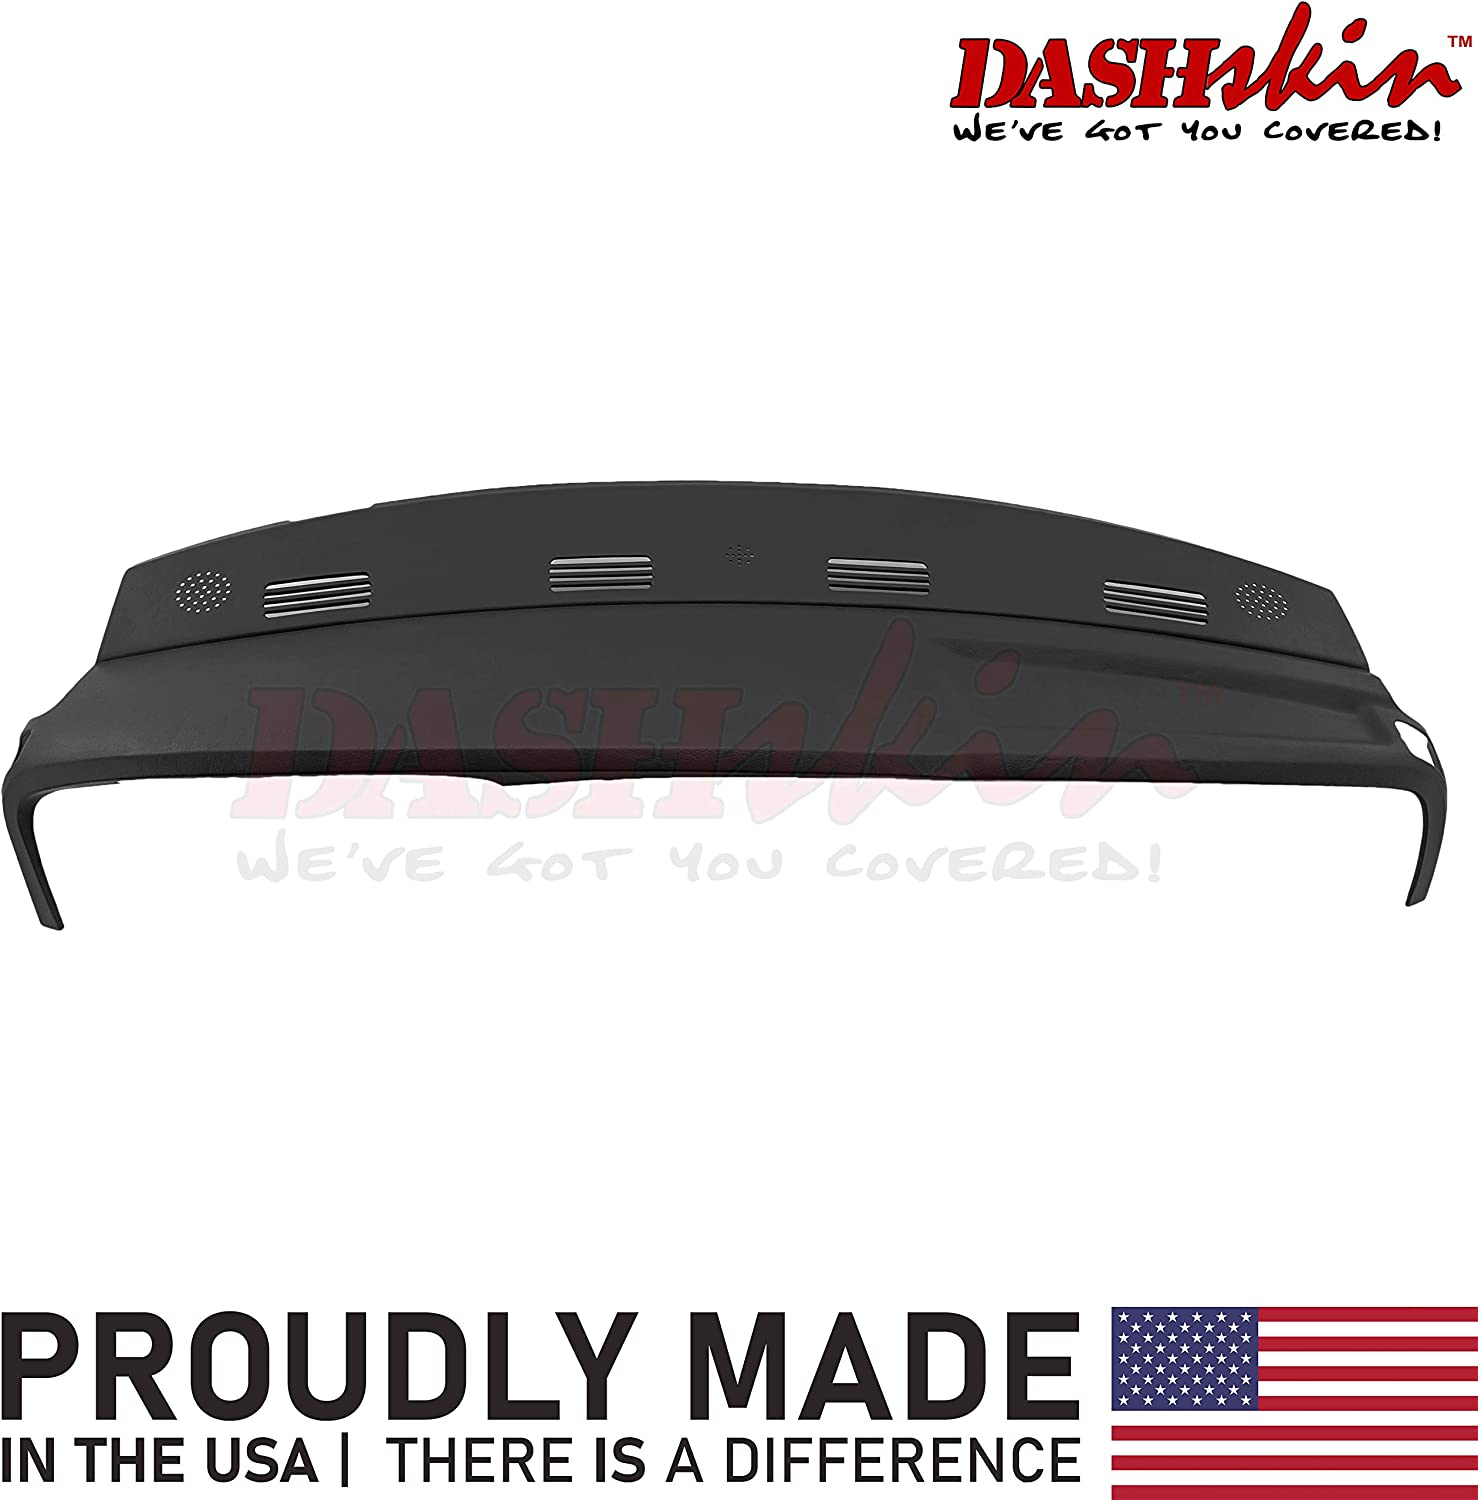 DashSkin Molded Dash Cover Compatible with Max 49% OFF Max 43% OFF 02-05 Dodge Bl in Ram